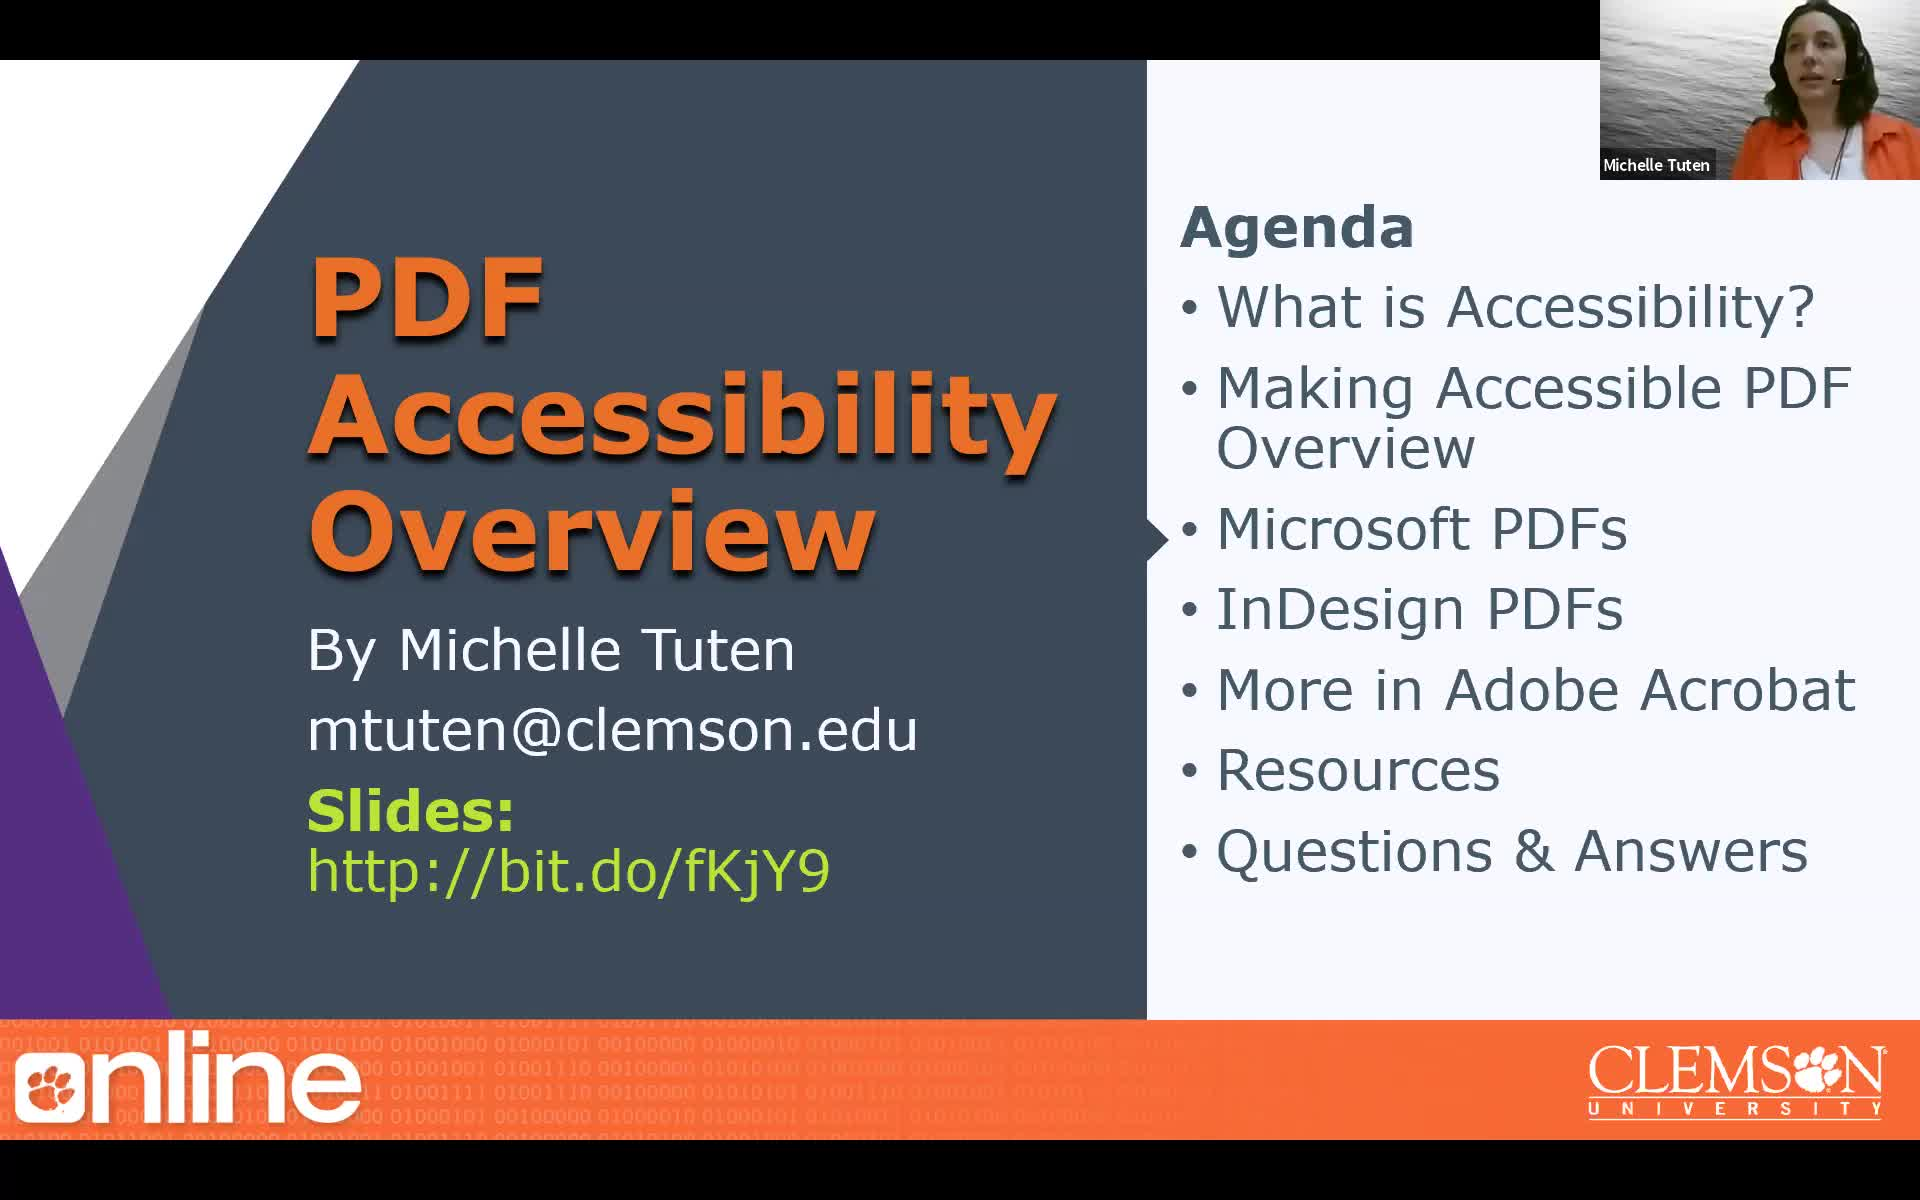 PDF Accessibility Overview